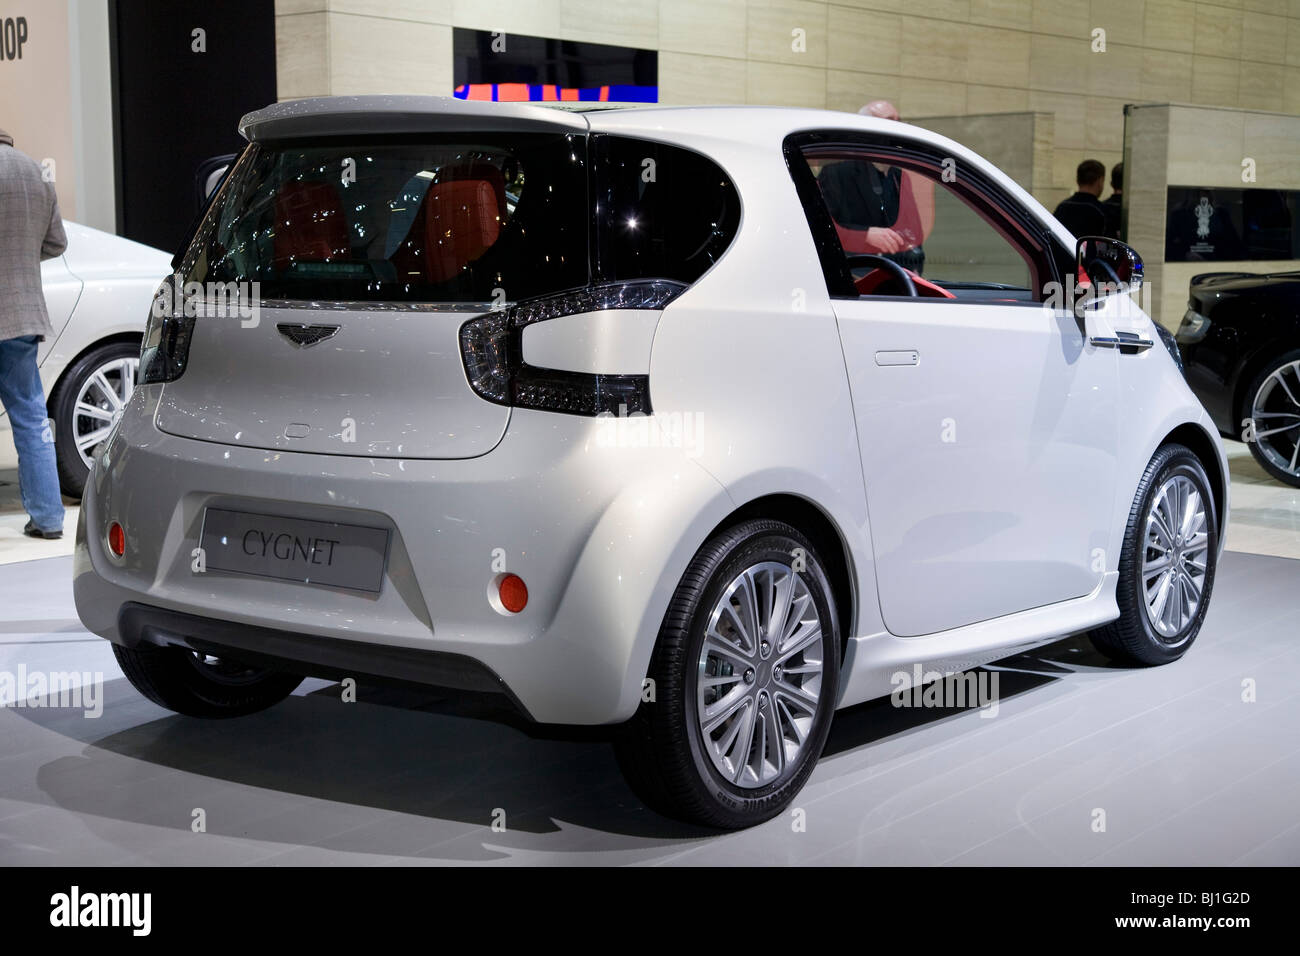 Great Aston Martin Cygnet Toyota IQ Based City Car At A Motor Show